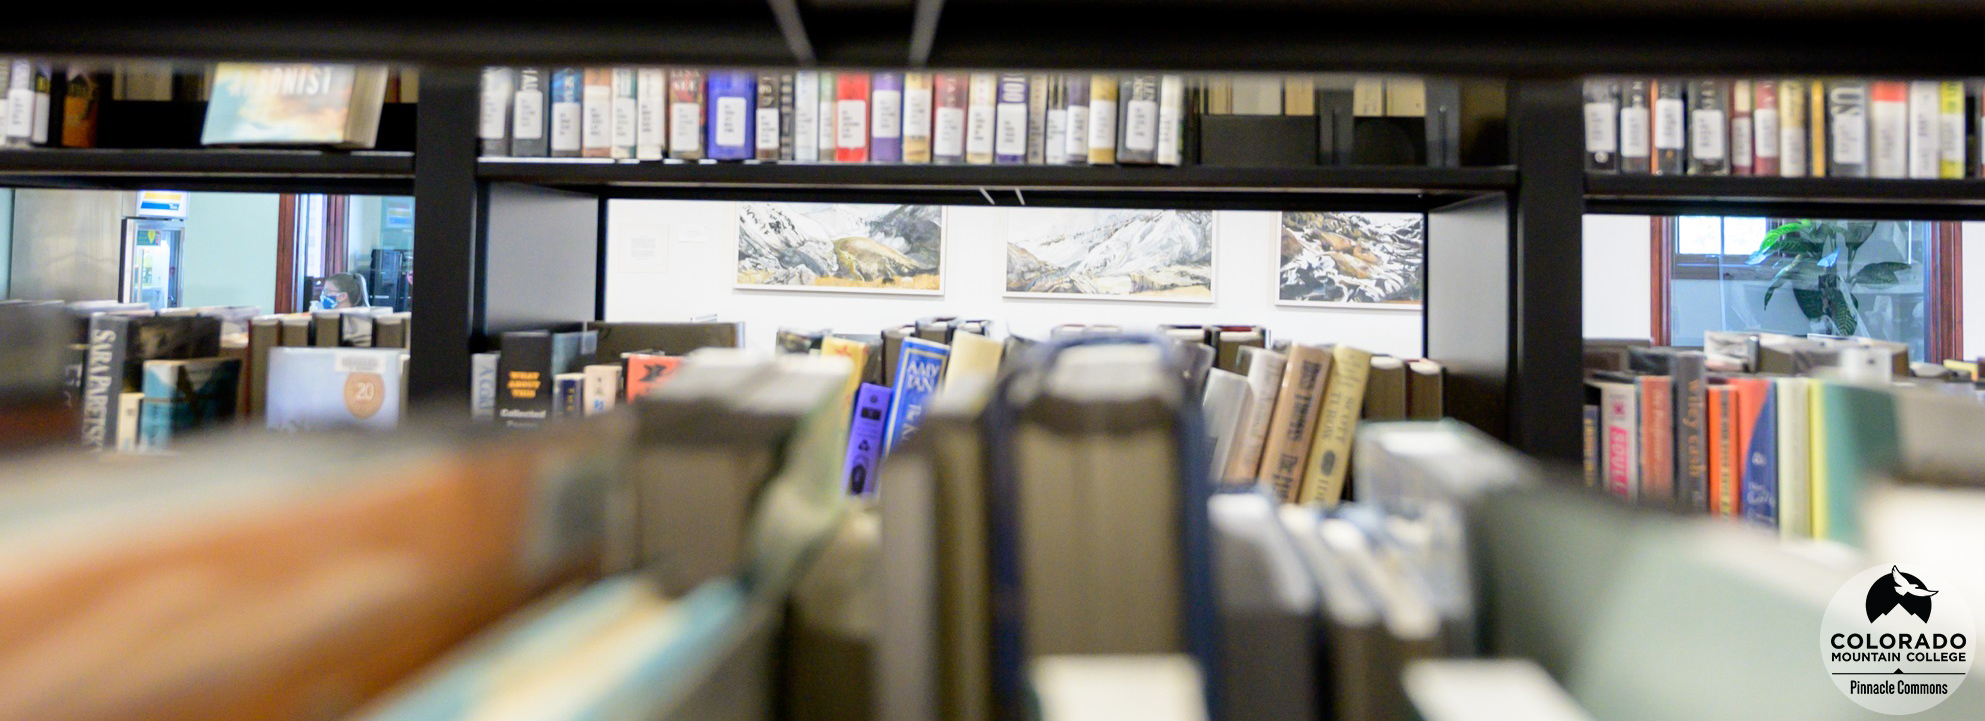 View through the book stacks in the Leadville Learning Commons.